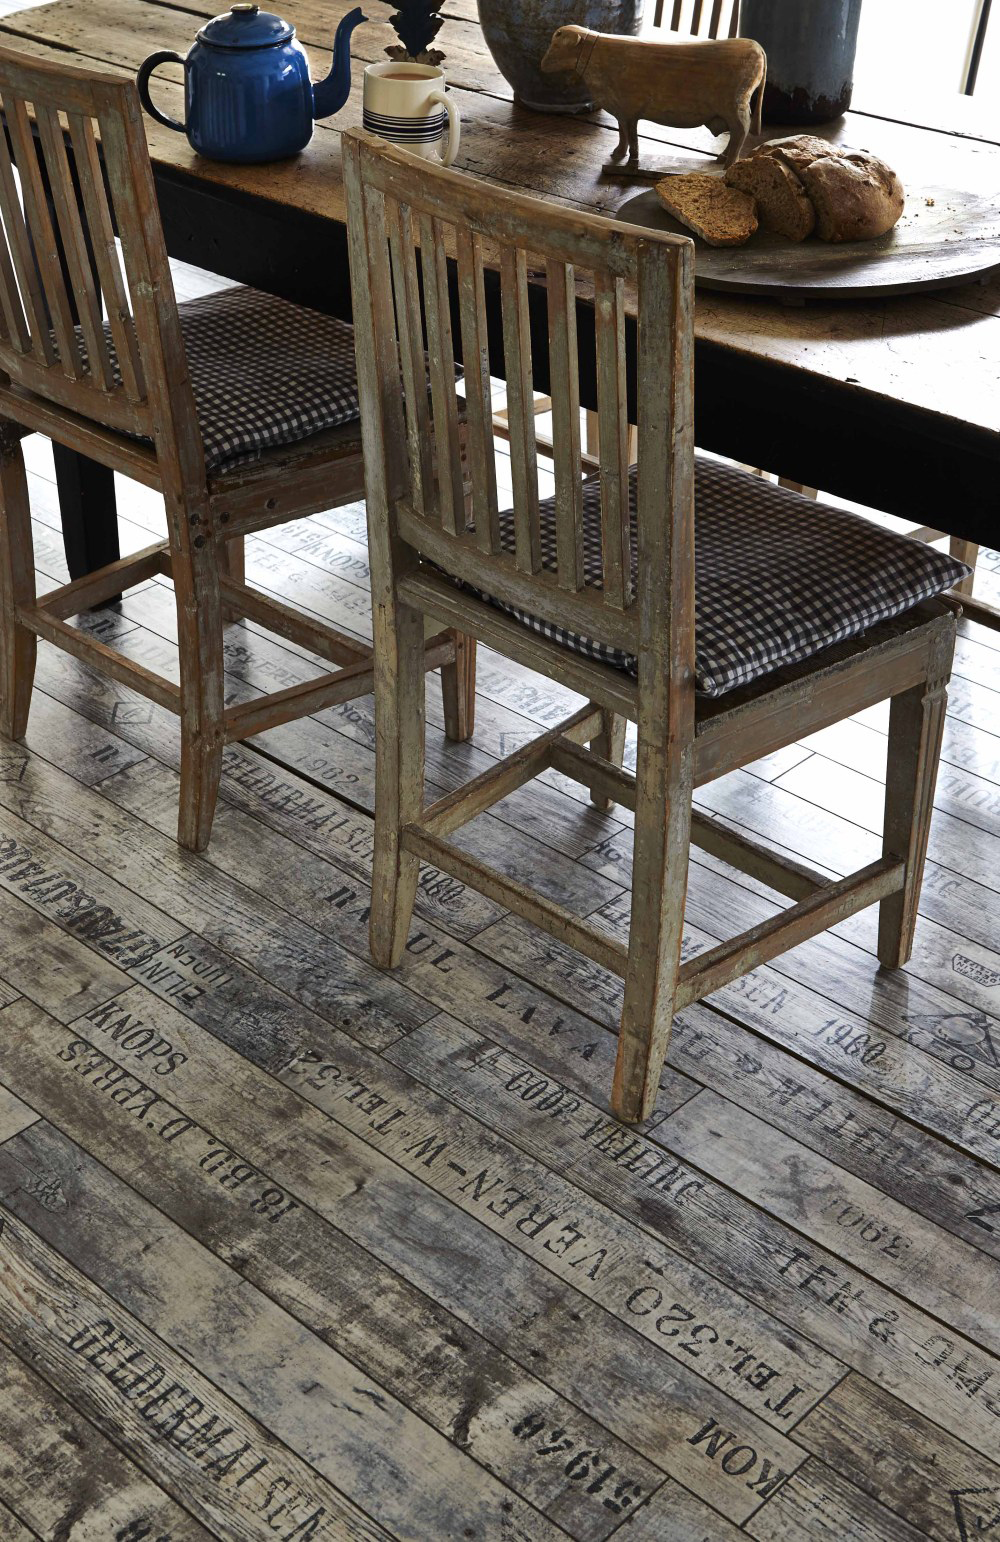 wine and fruit crates writing on the floor rustic furniture